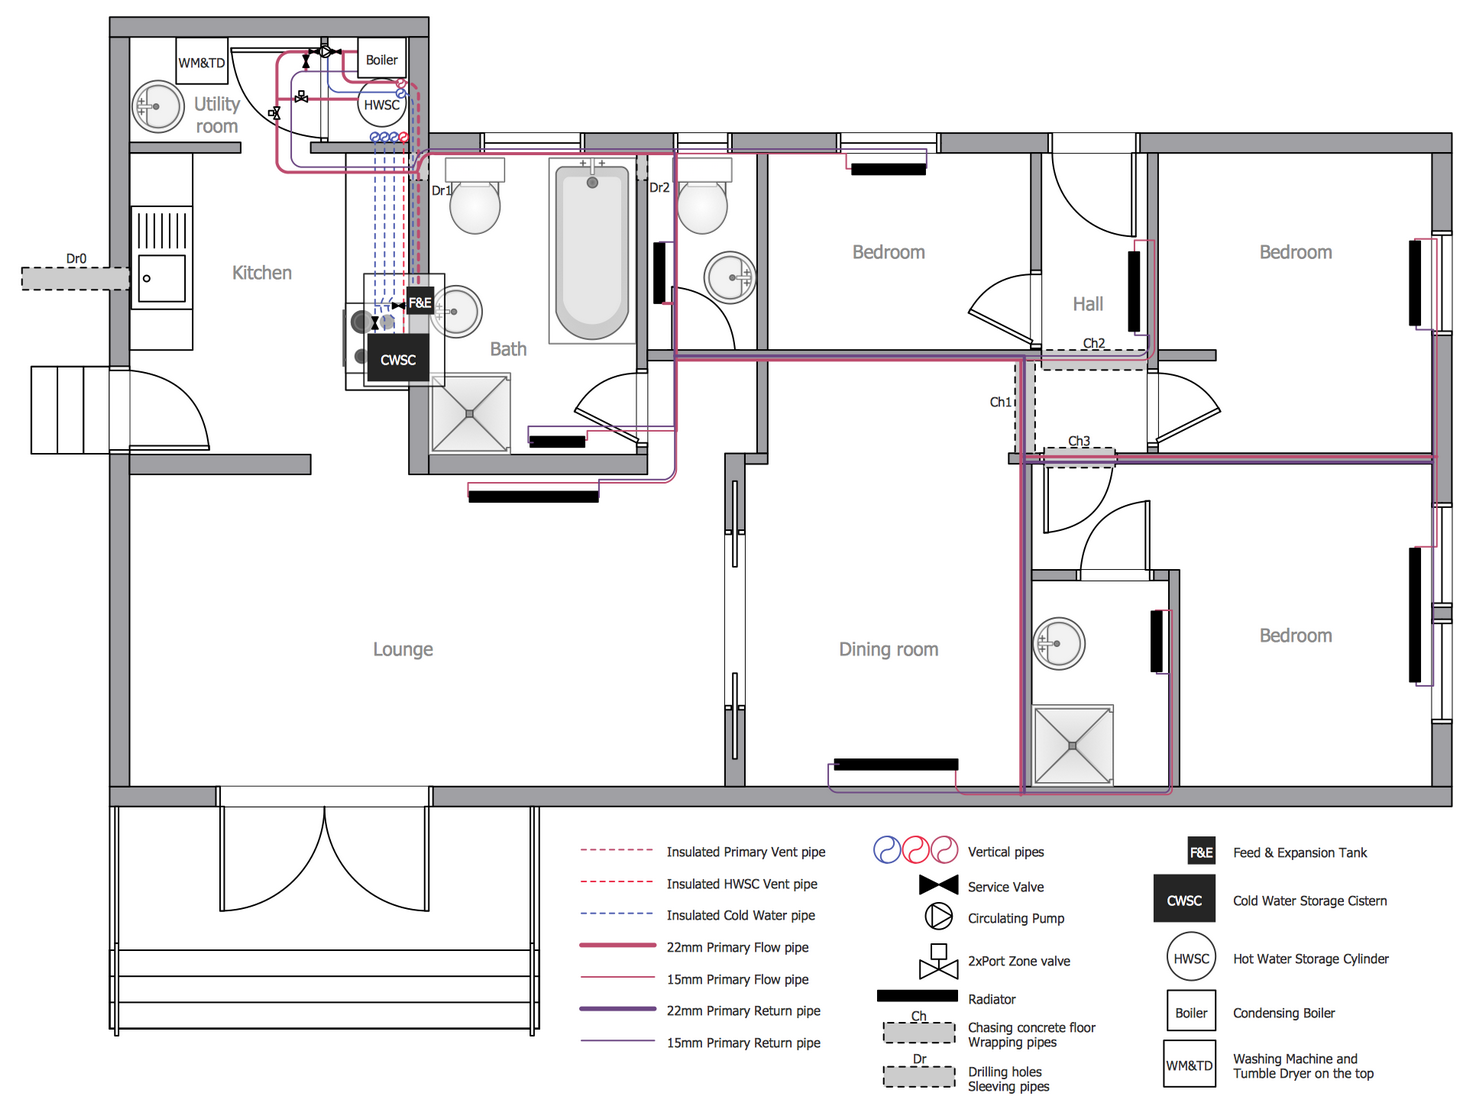 Plumbing and piping plans solution for Blueprints and plans for hvac pdf